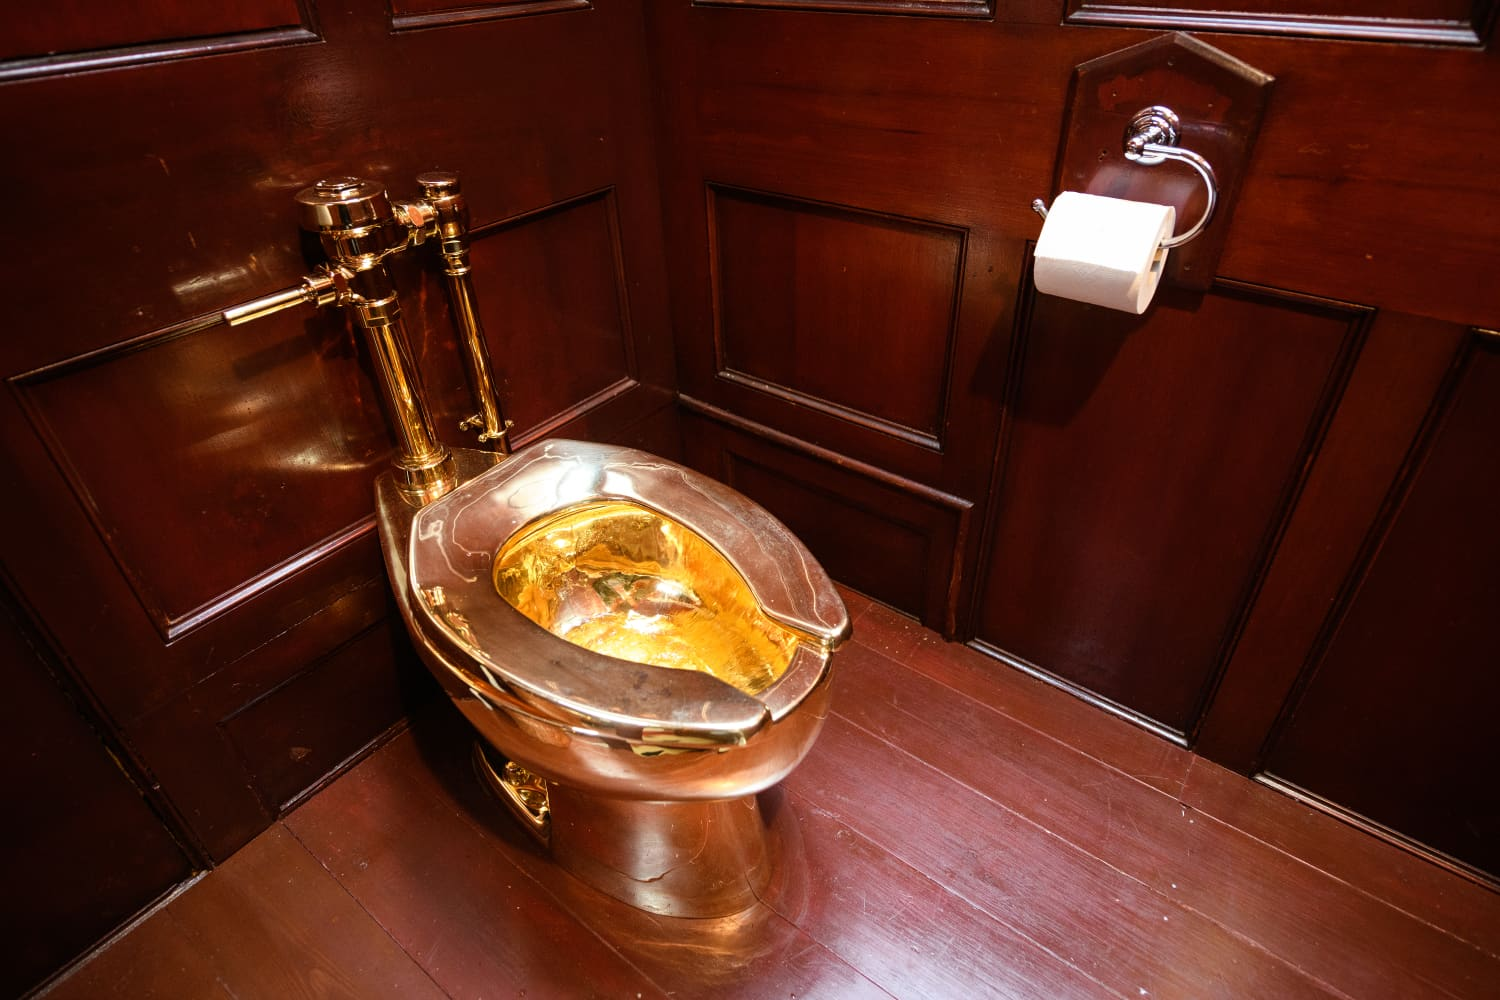 Someone Has Stolen a Solid Gold Toilet Worth $5 Million